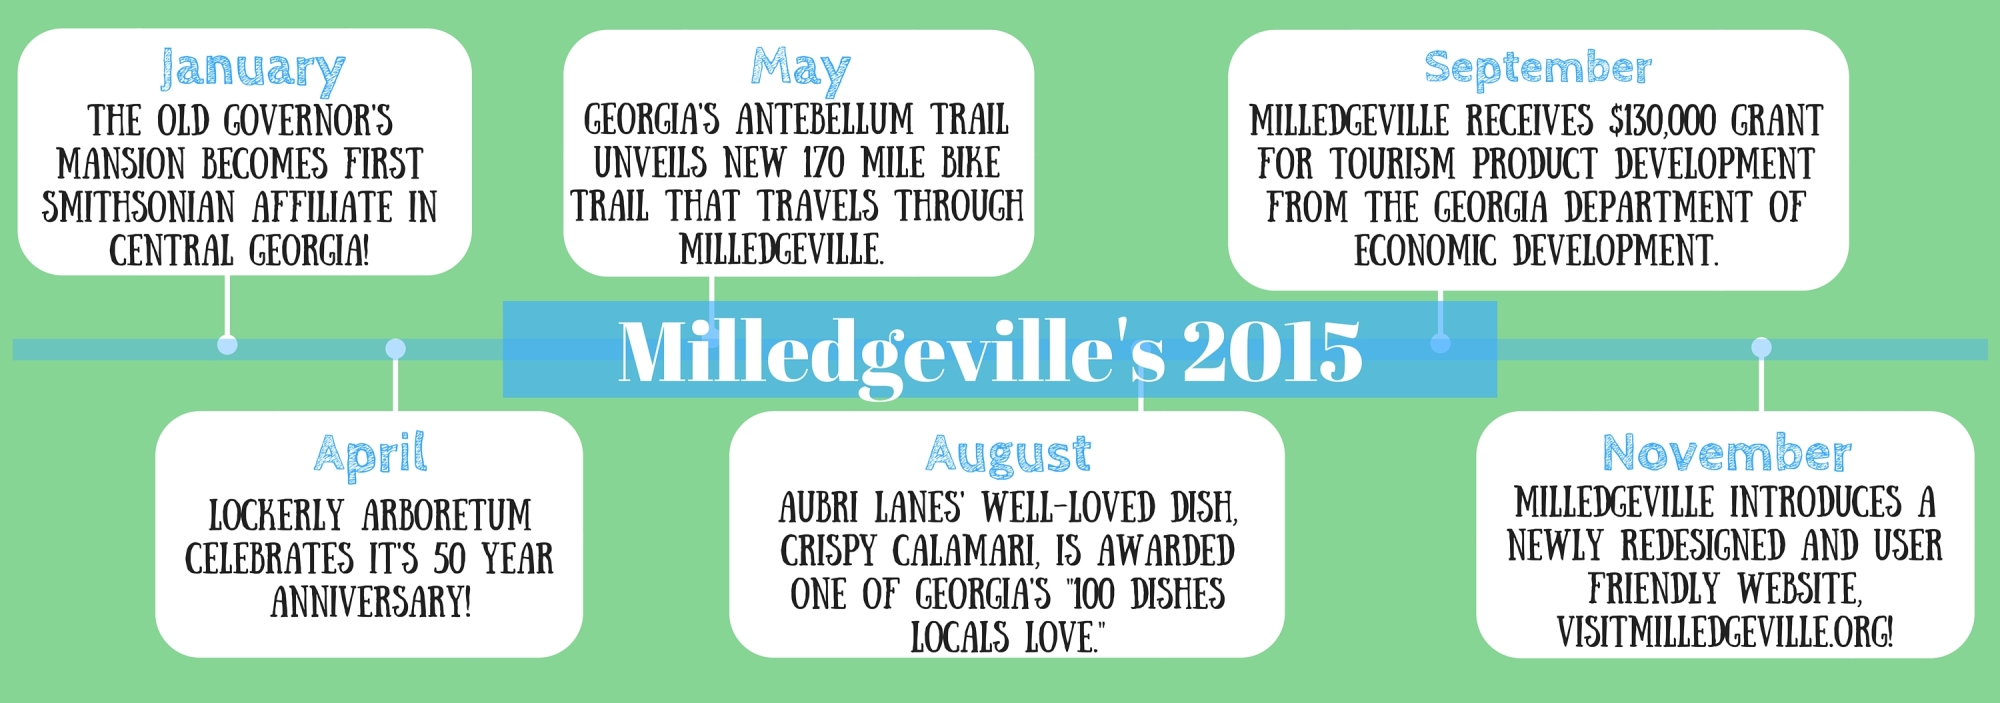 meet milledgeville singles About southside what we  married couples, singles, men, women, kids, no  and money joyfully in response to jesus' generosity and to help more people meet.